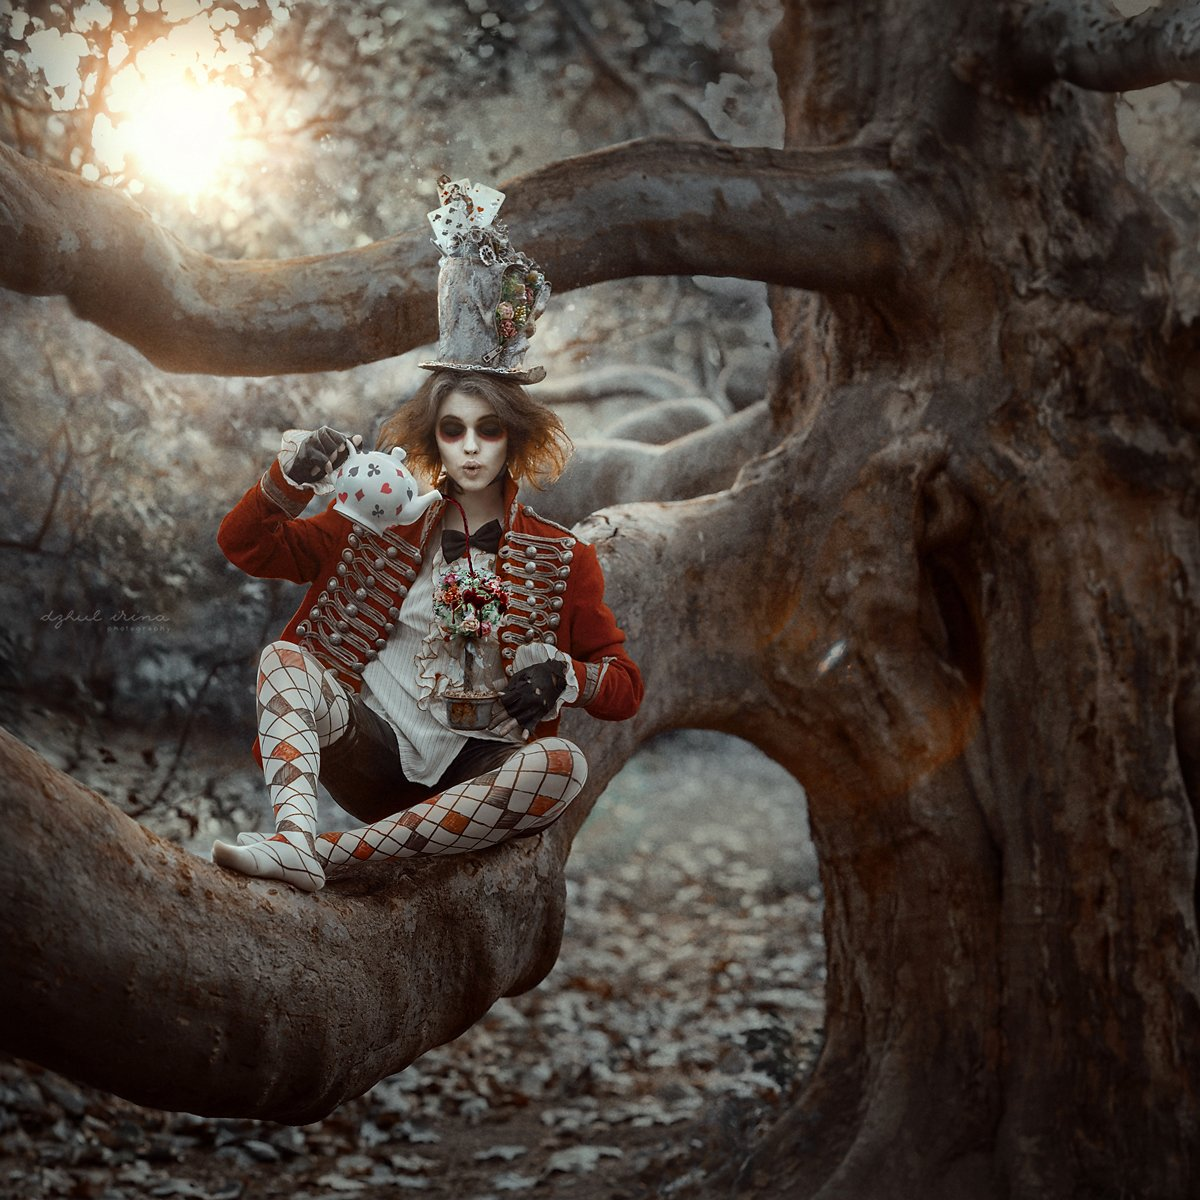 Canon, Dzhul irina, Fairy tale, Fantasy, Girl, Irinadzhul, People, Photo, Photography, Photoshop, Popular, Portrait, Ирина Джуль